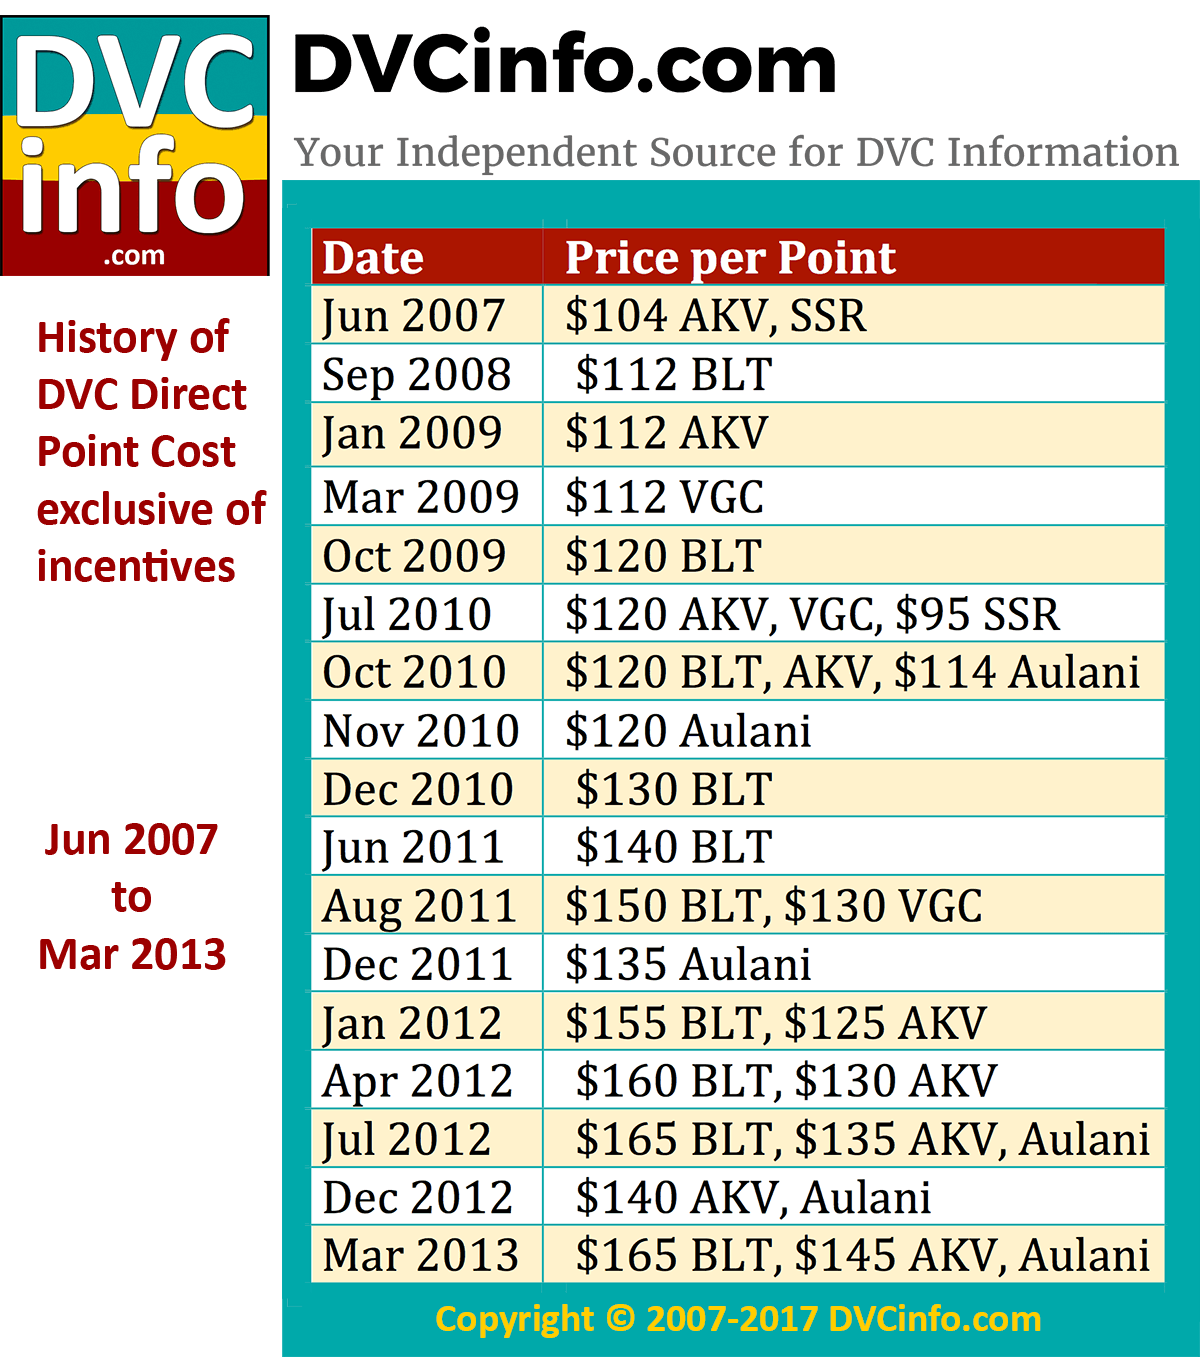 Historical price per point dvcinfo